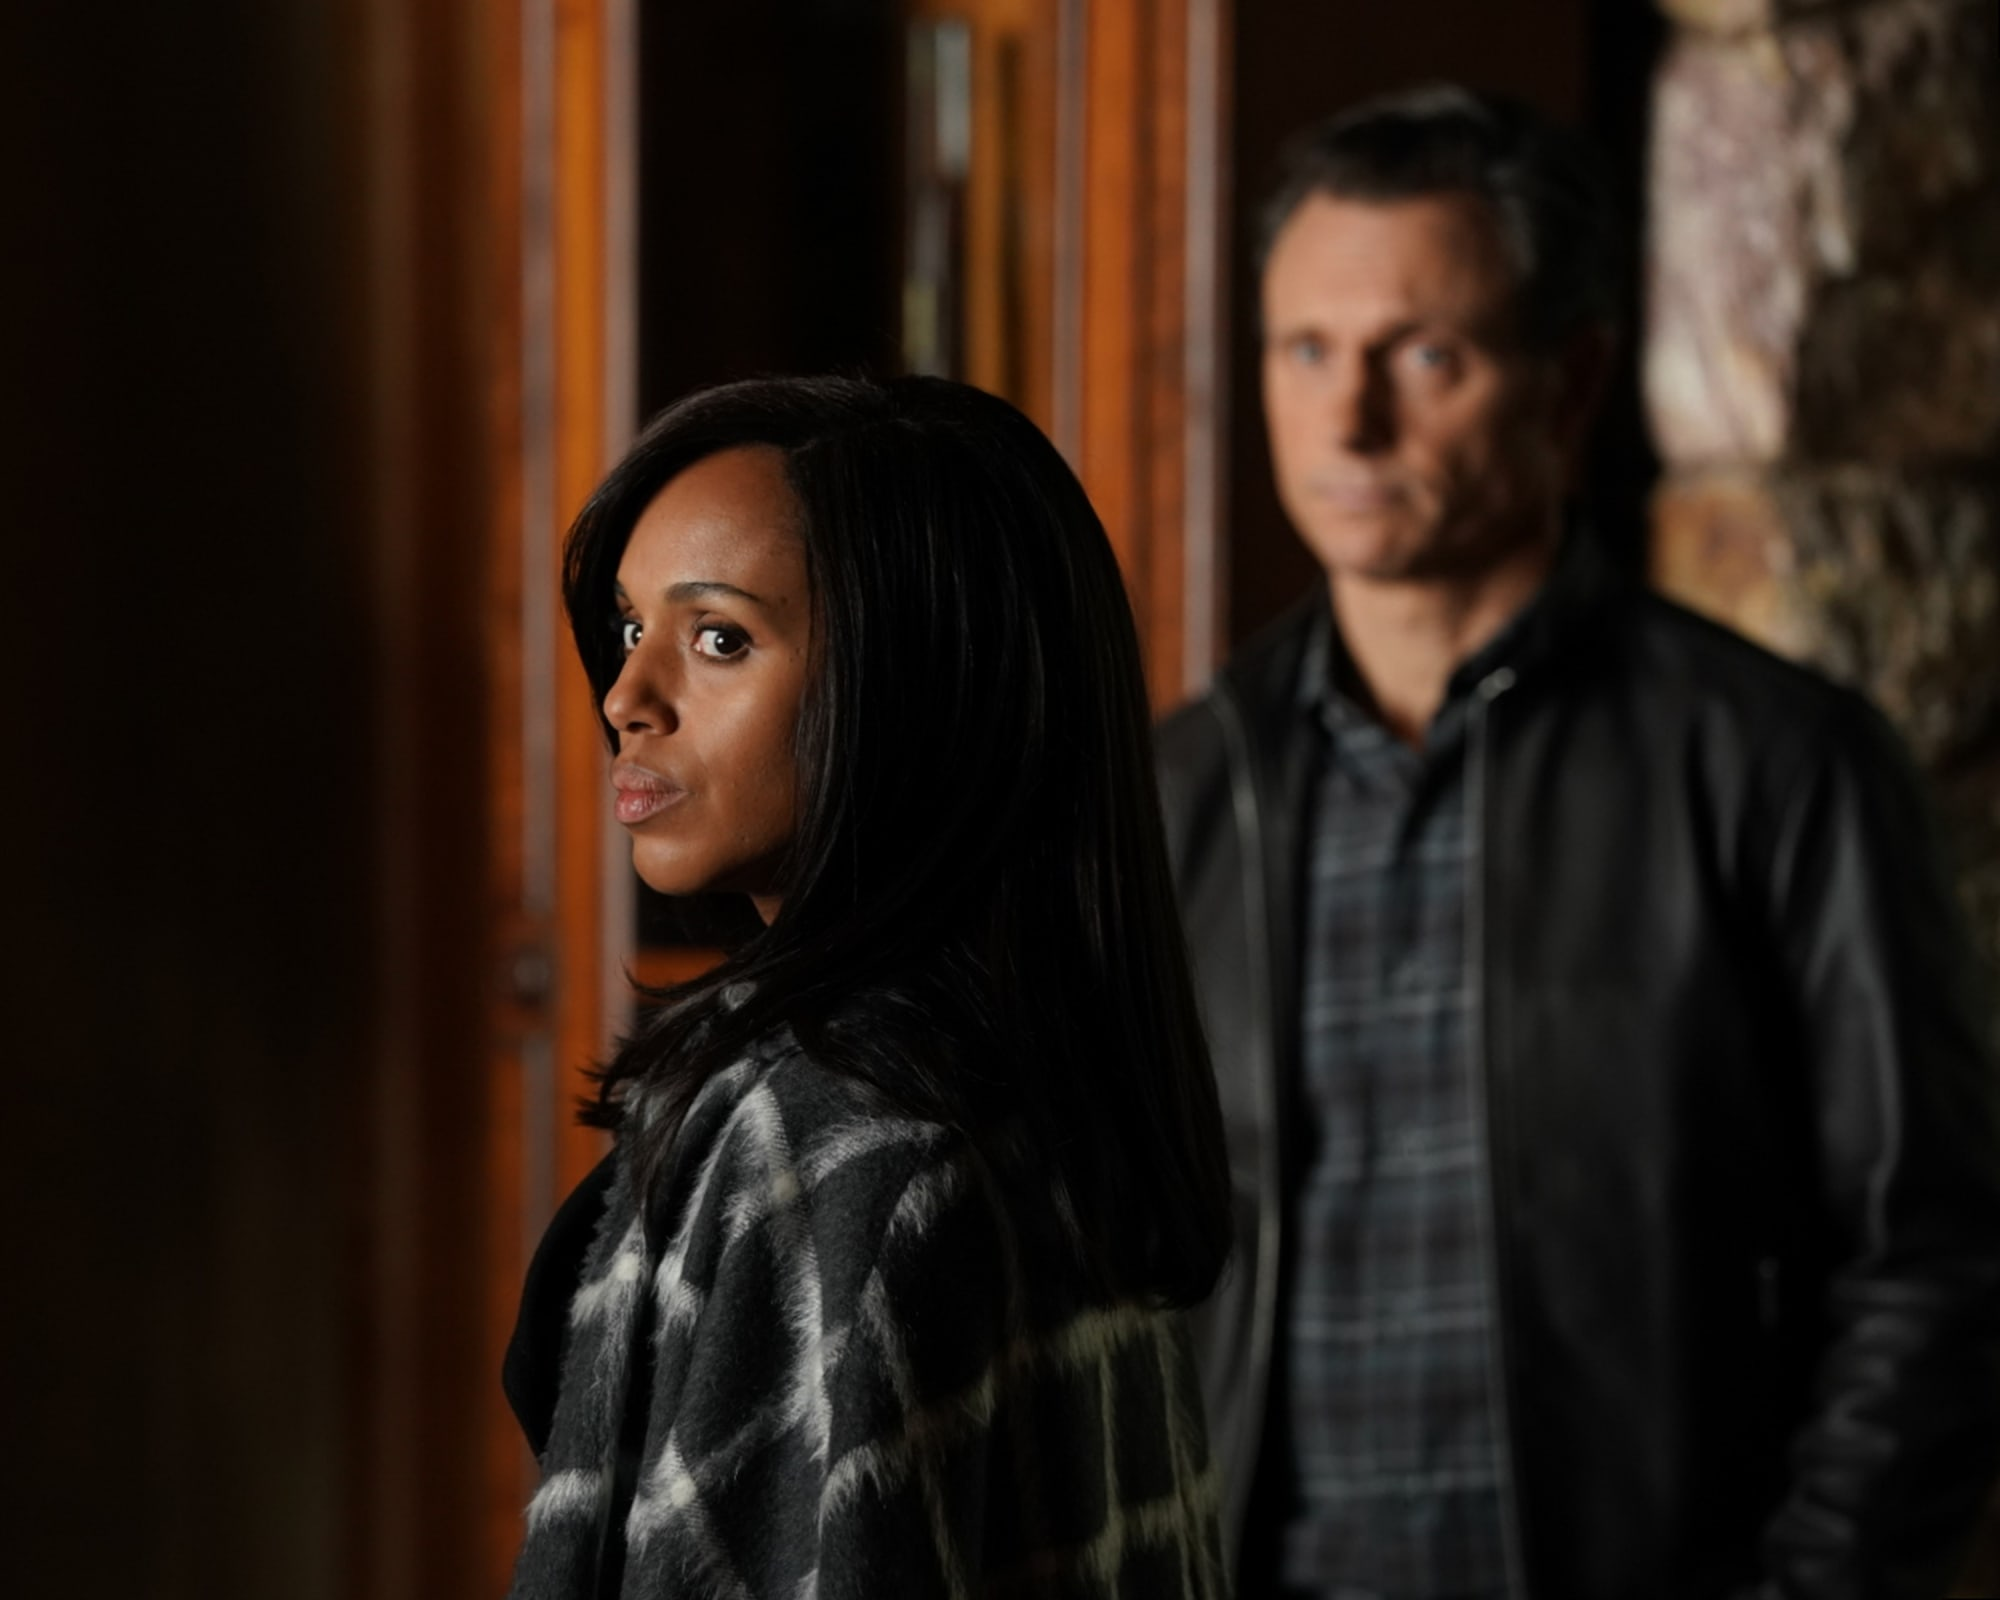 Scandal: Everything you need to know about season 7, episode 10 The People v. Olivia Pope